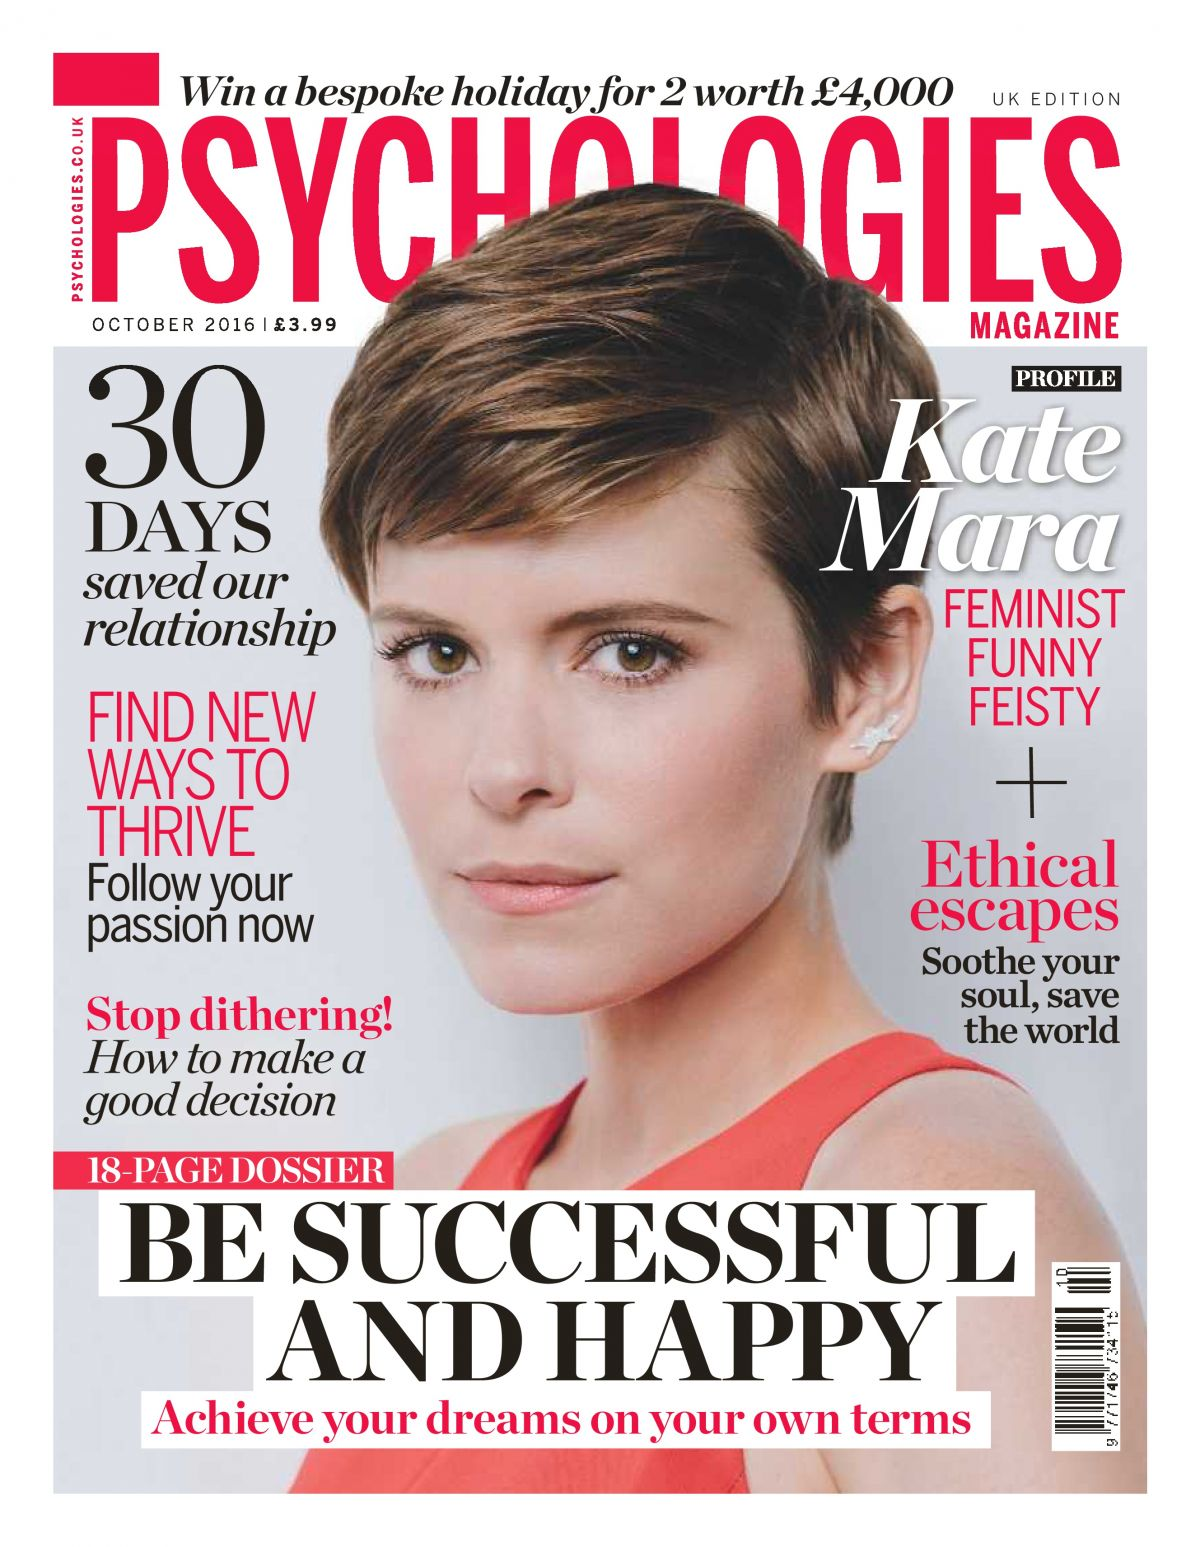 KATE MARA in Psychologies Magazine, October 2016